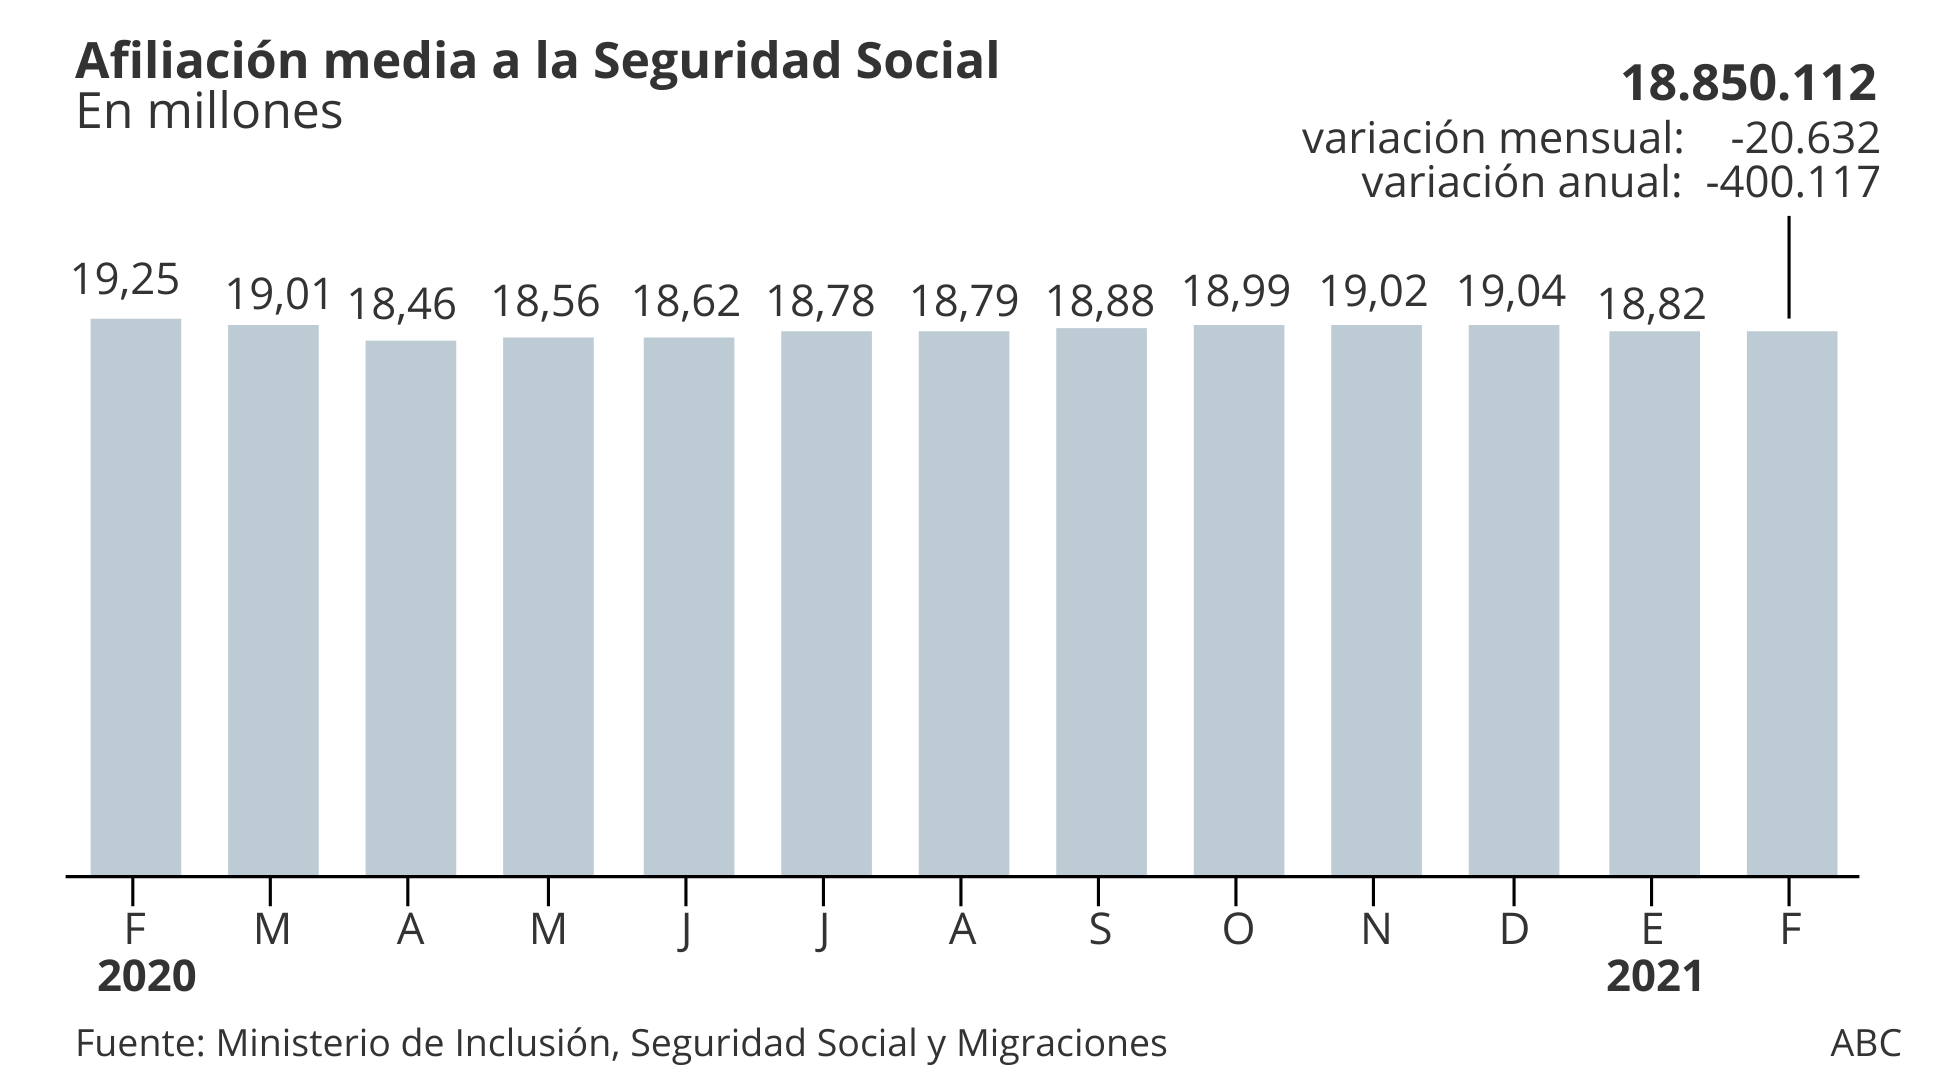 Average affiliation to Social Security